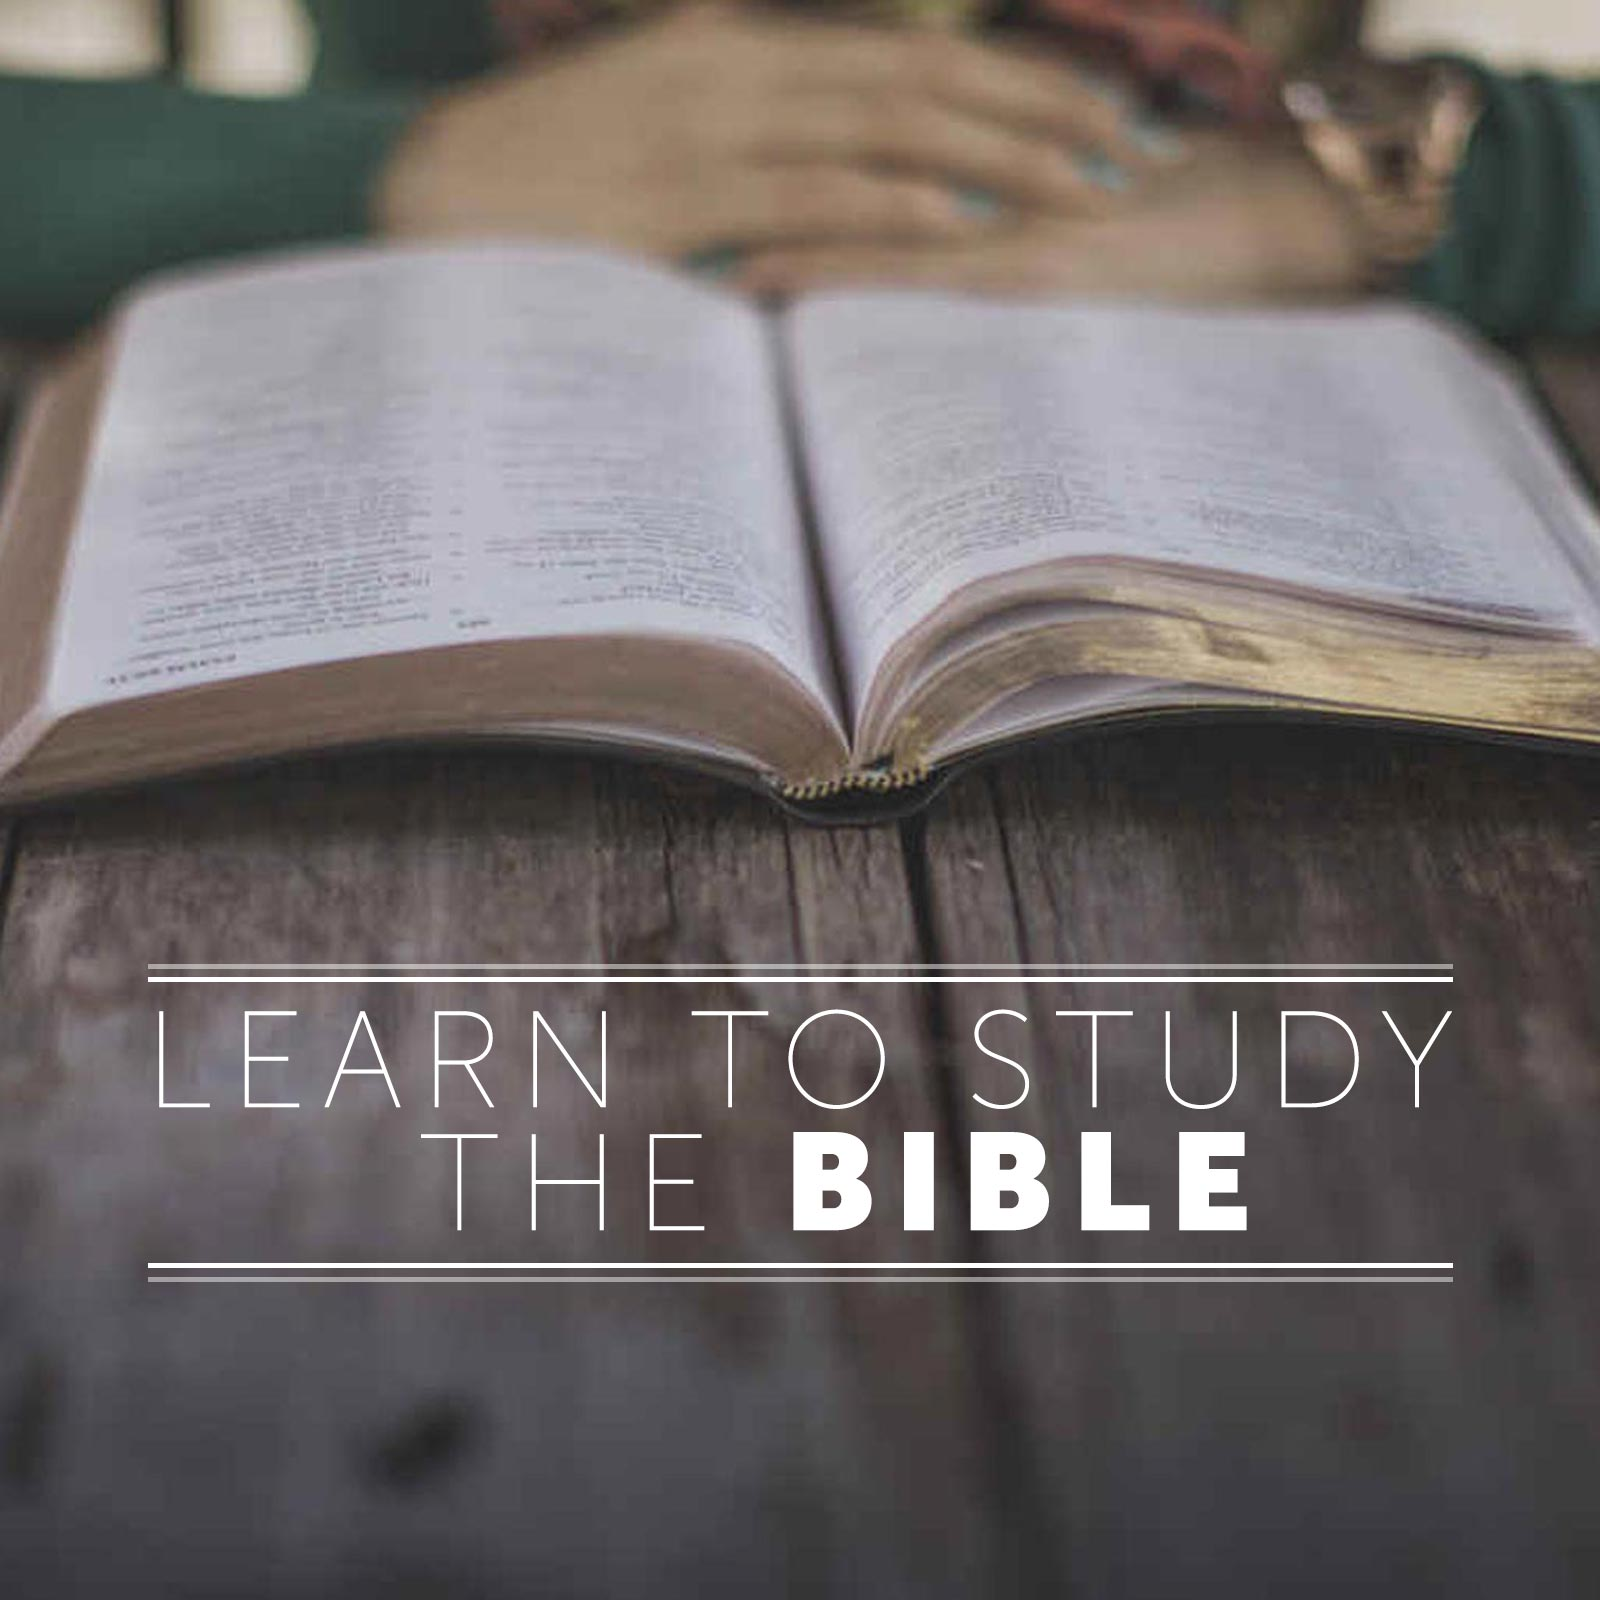 Studying the Scriptures | Bible.org